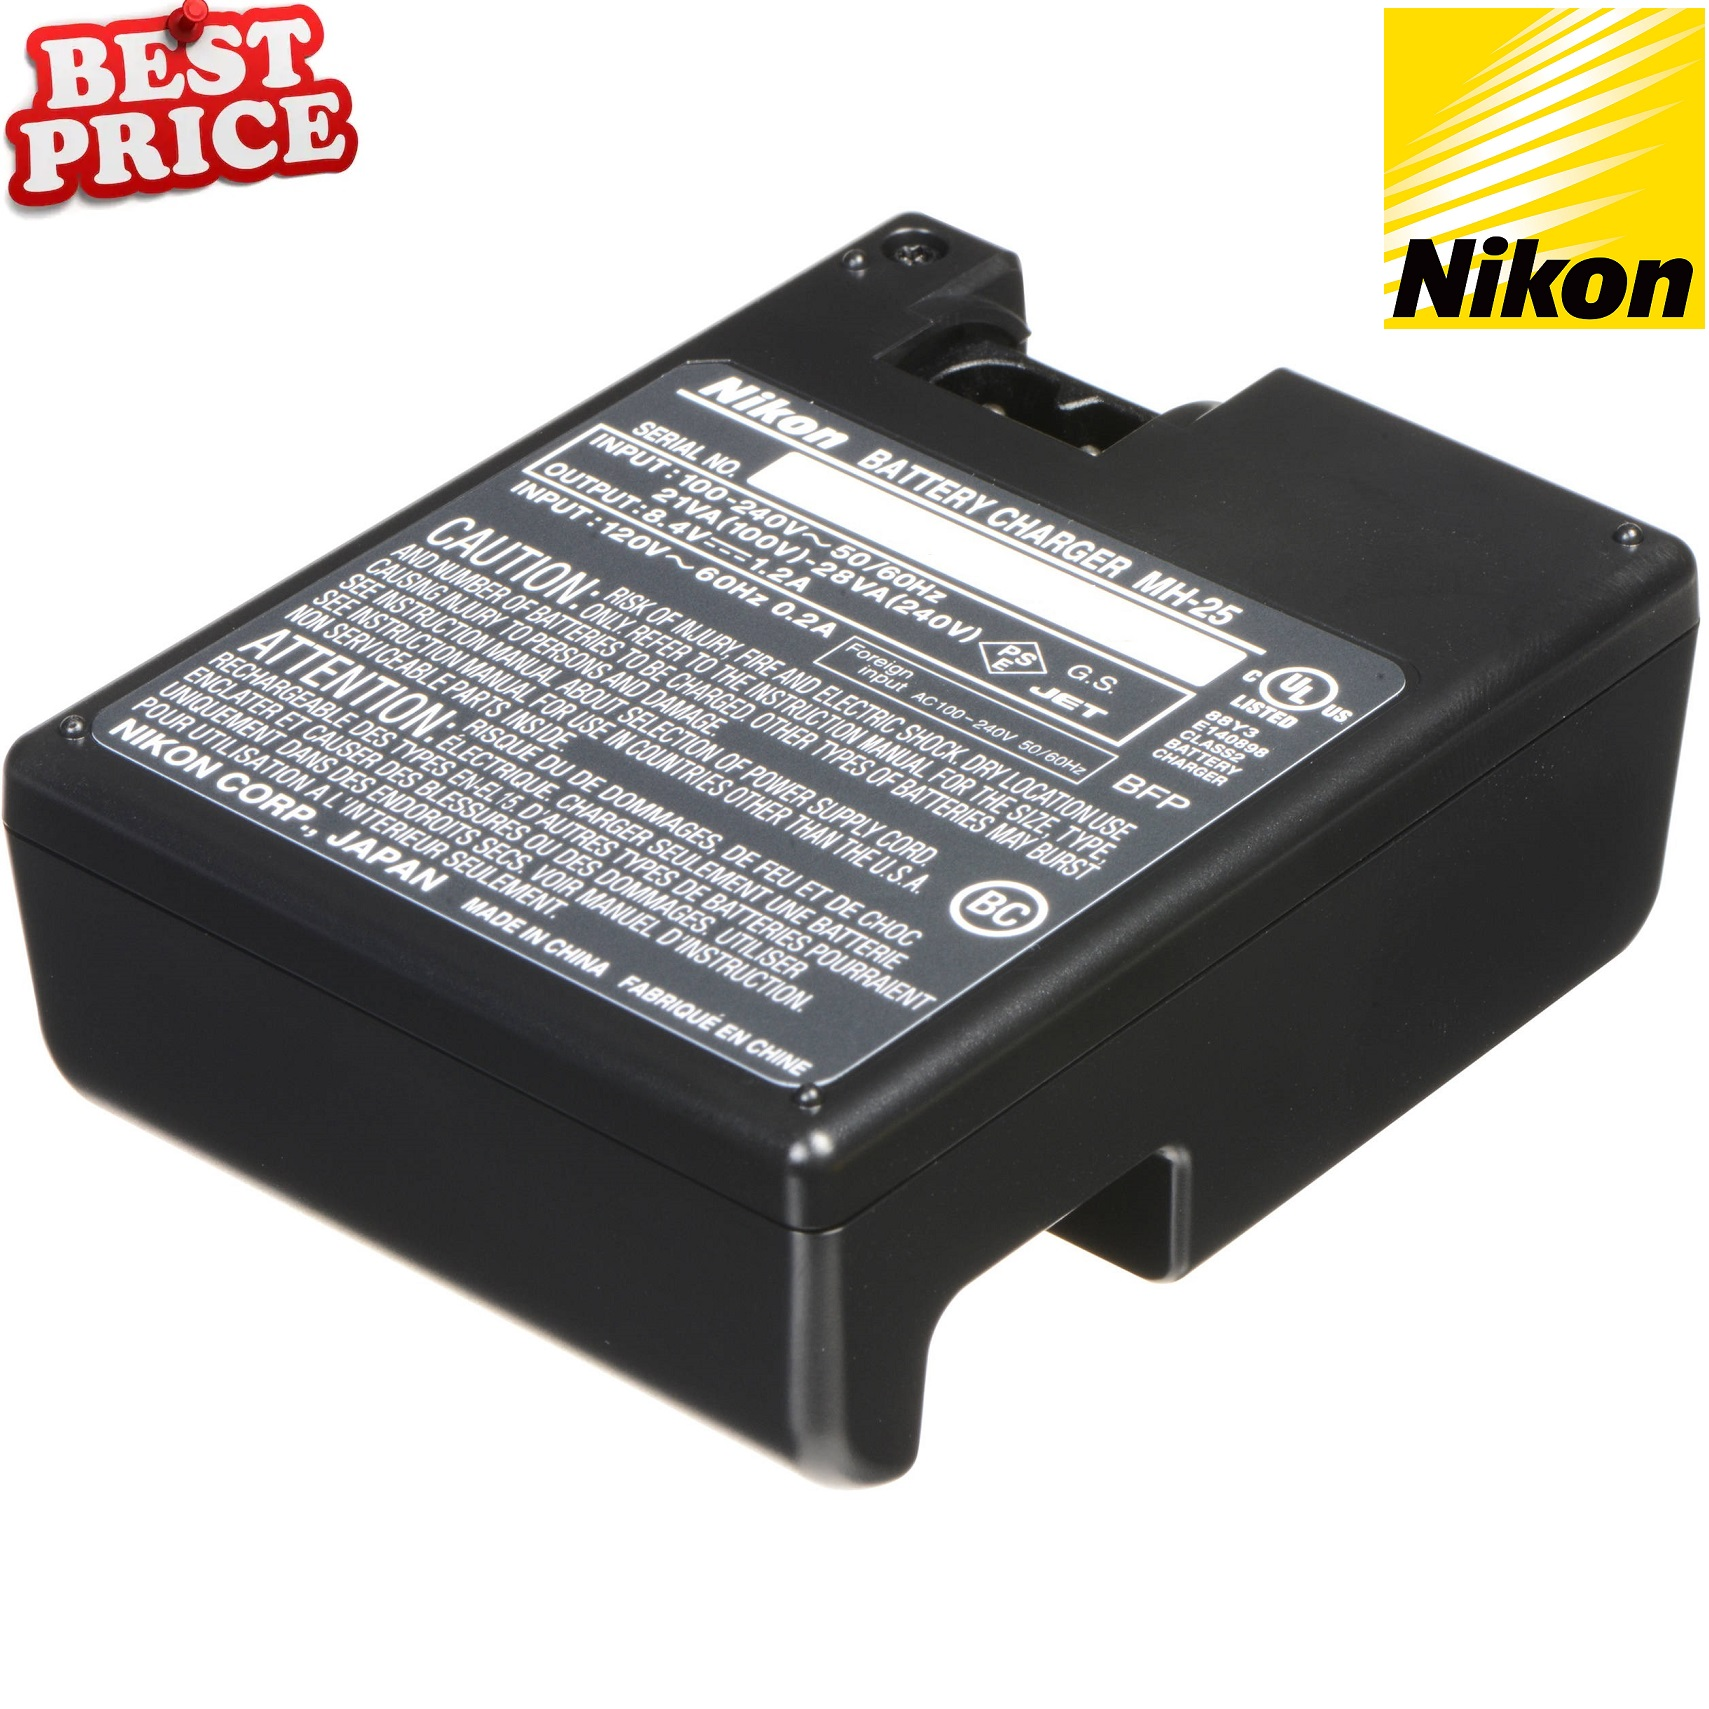 Nikon MH-25 Quick Charger For Nikon EN-EL15 Battery